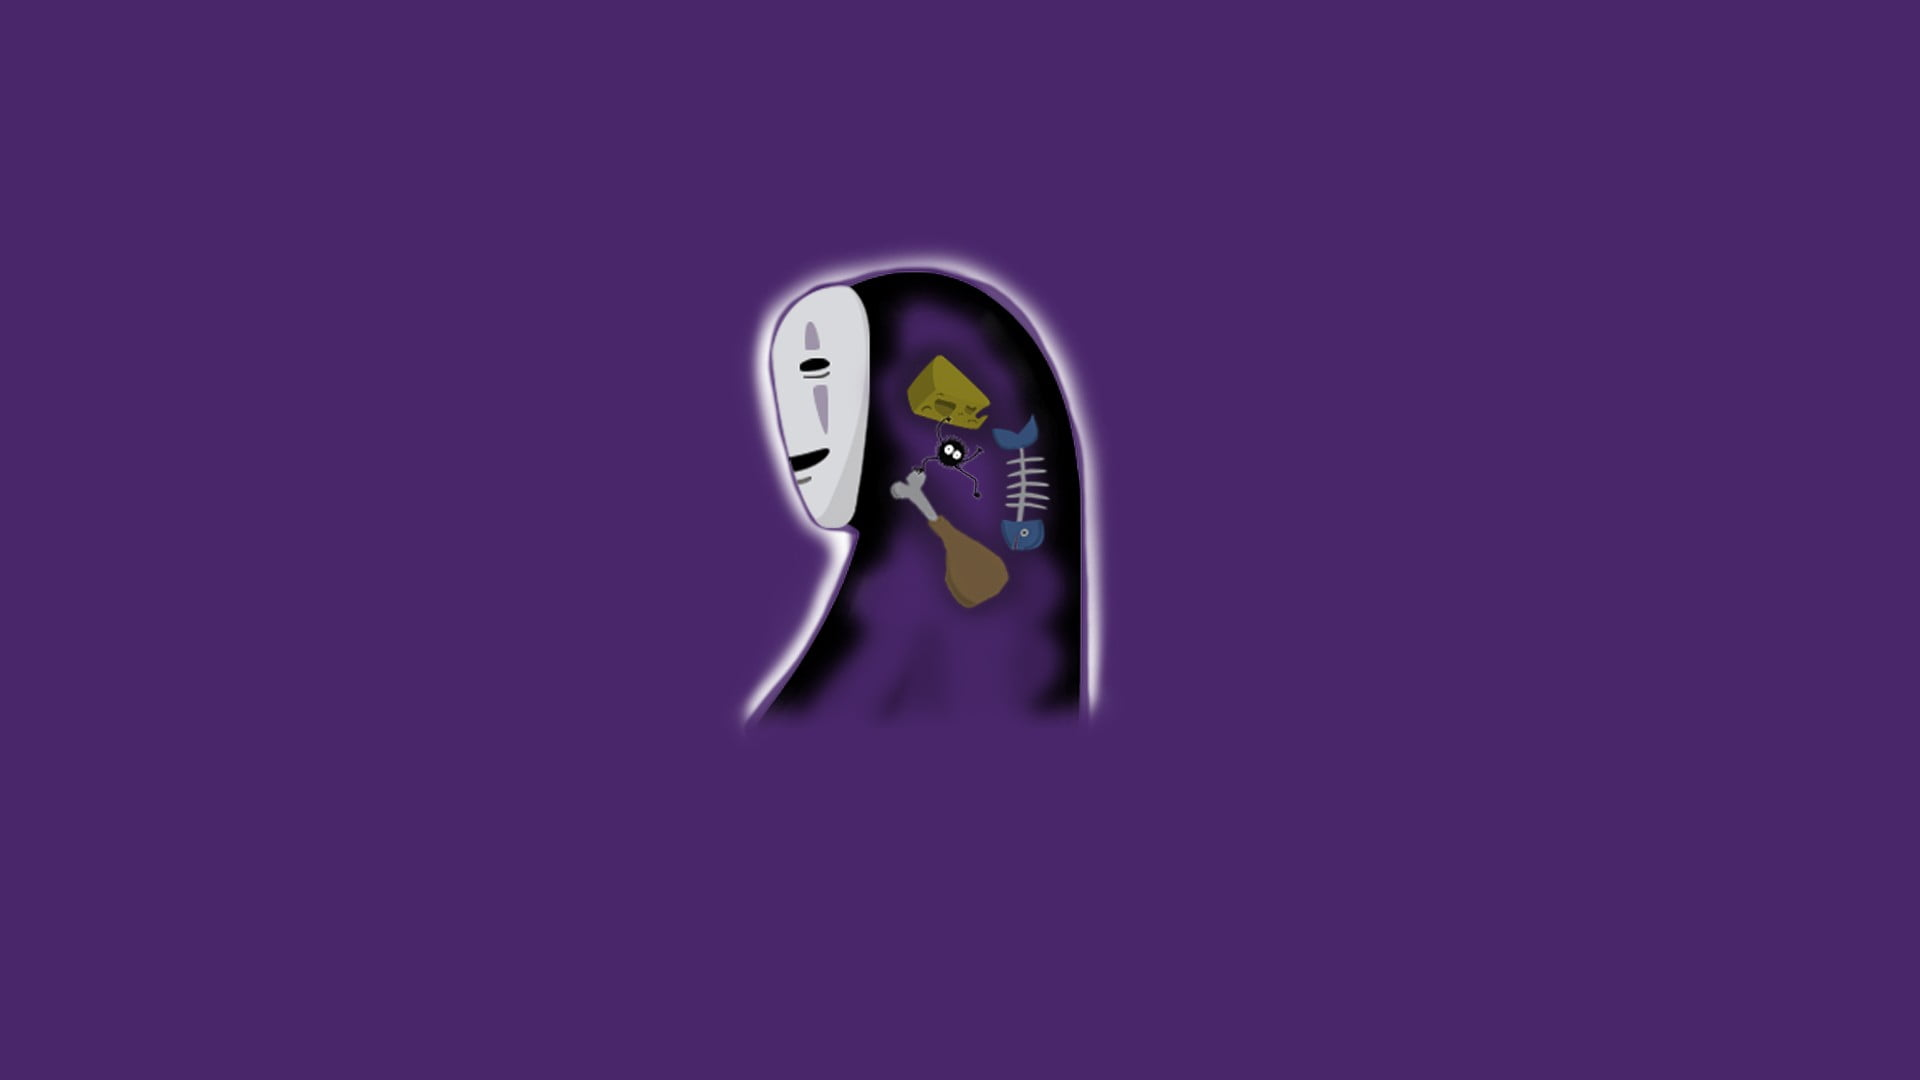 Download No Face Spirited Away Wallpaper Hd Backgrounds Download Itl Cat